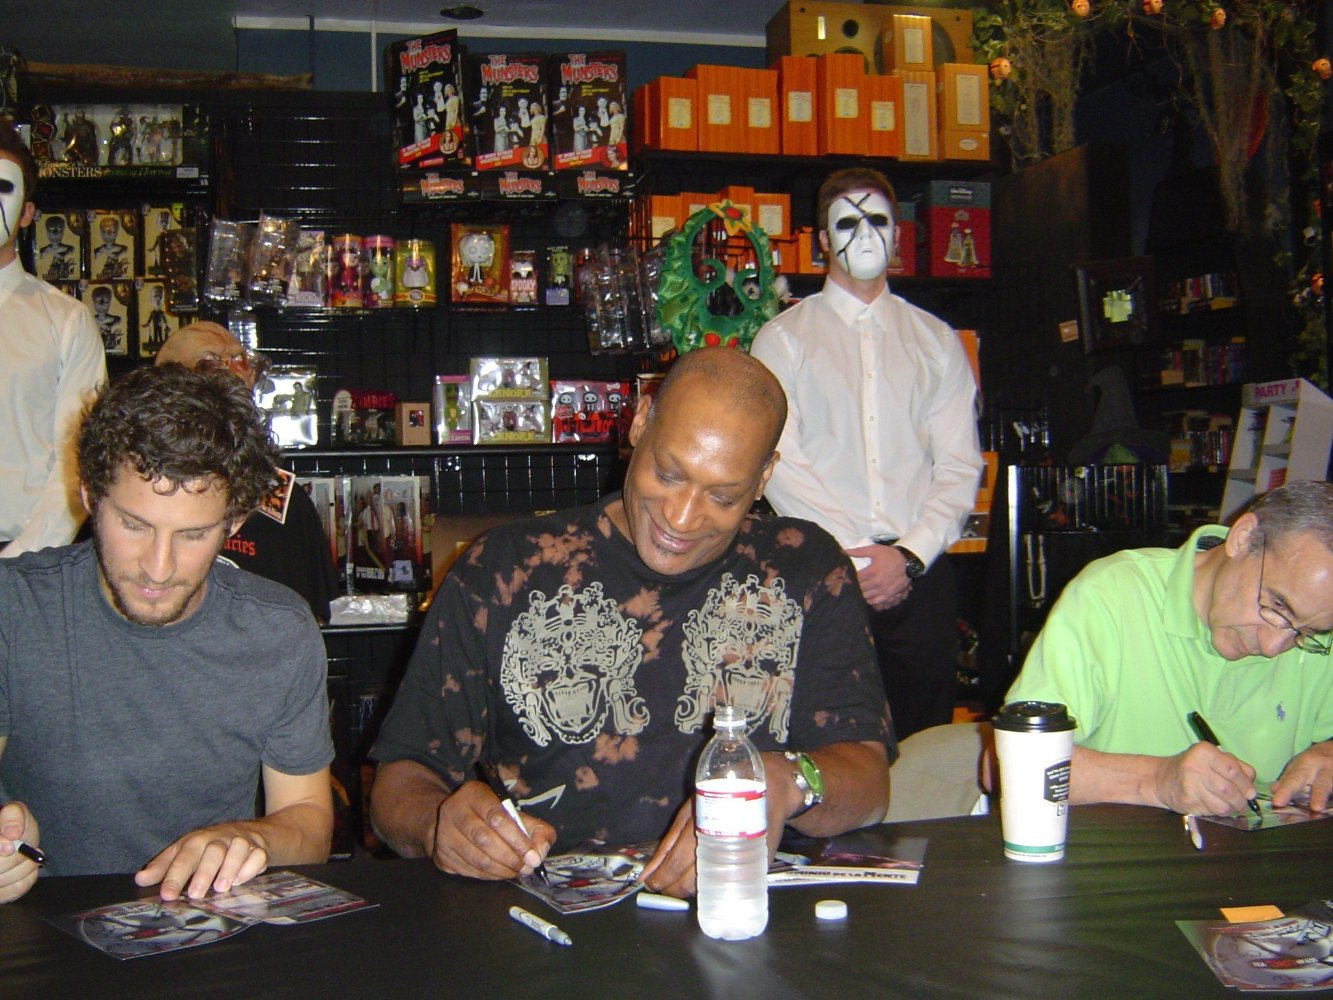 Tony Todd and Lloyd Kaufman at BRYAN LOVES YOU DVD signing,